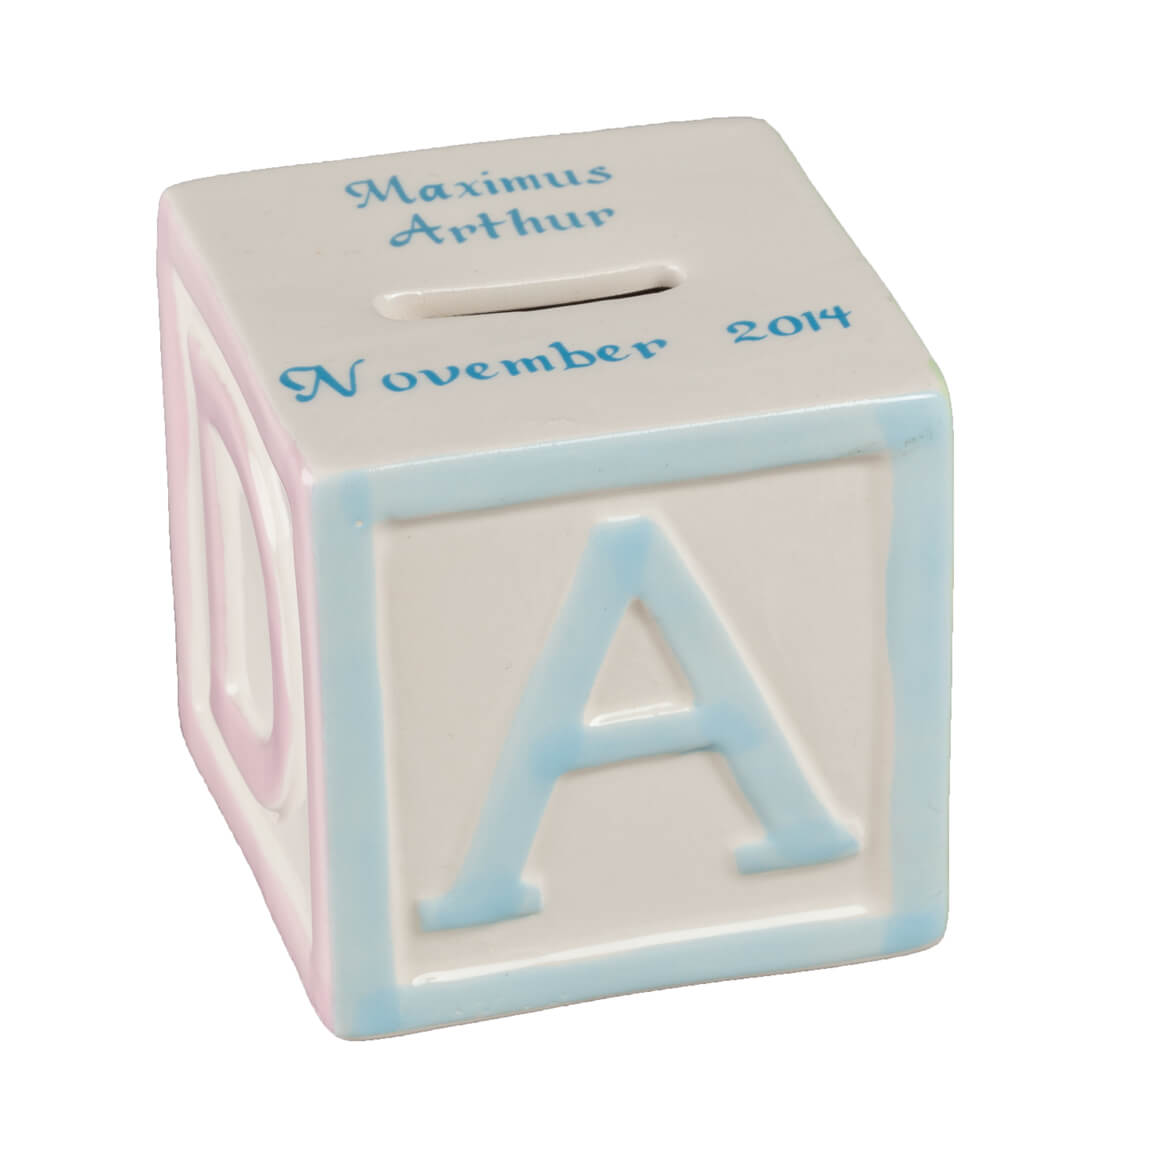 Personalized Alphabet Block Bank-361778